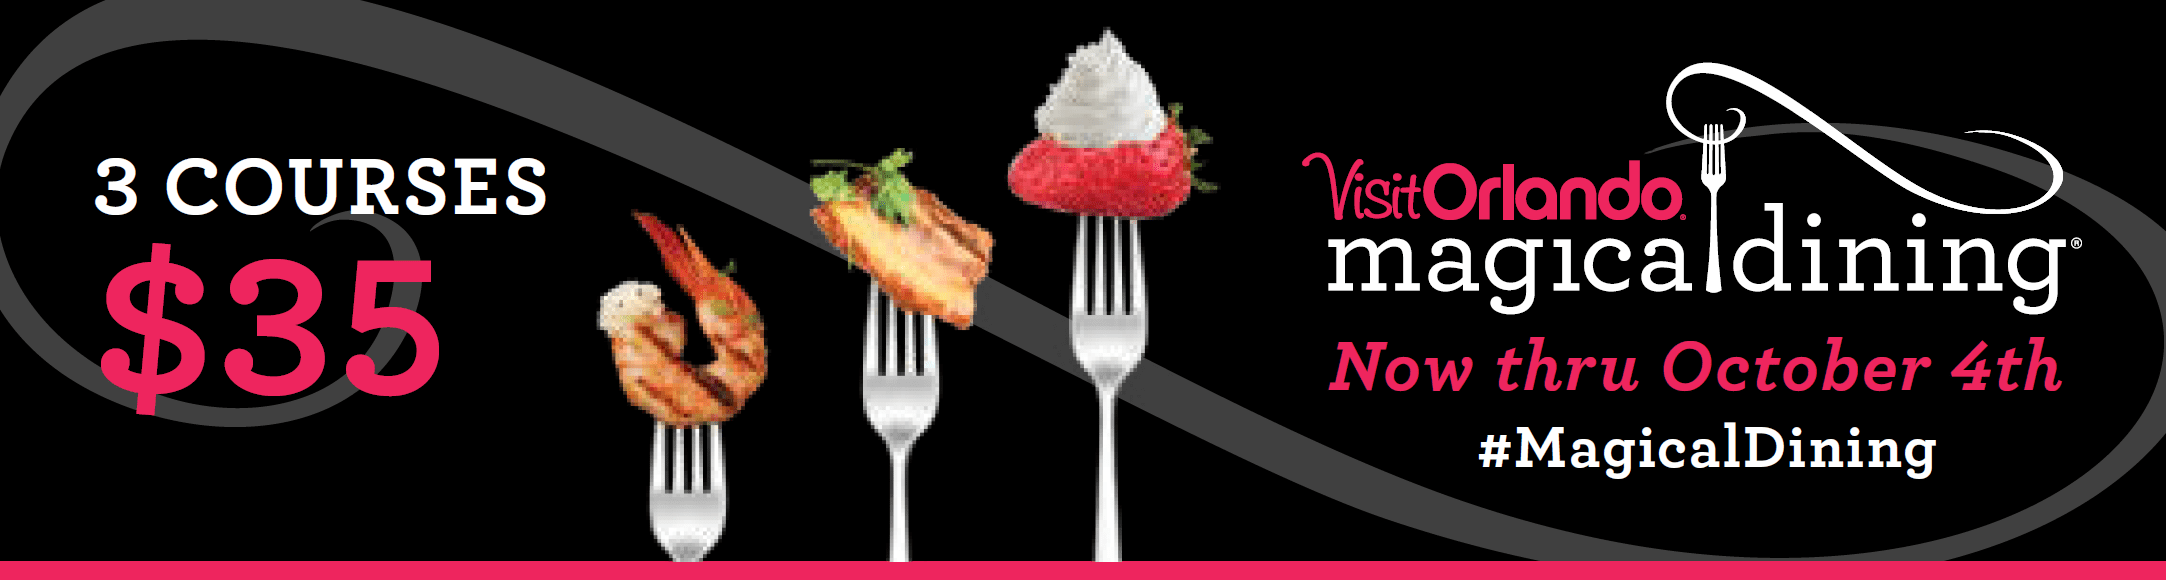 Banner notifying about Visit Orlando magical dining, now thru October 4th #MagicalDining 3 courses $35. A grilled shrimp, a piece of meat and a strawberry with whipped cream are on three forks